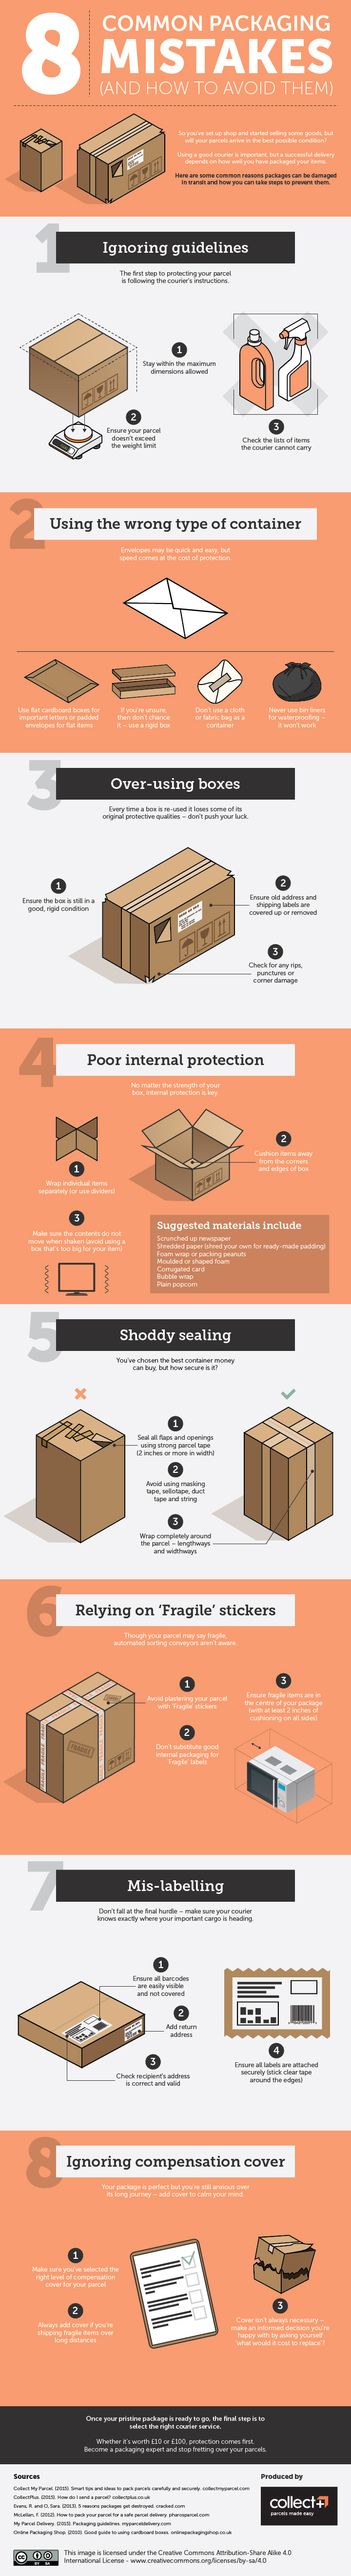 8 common packaging mistakes and how to avoid them v2 3